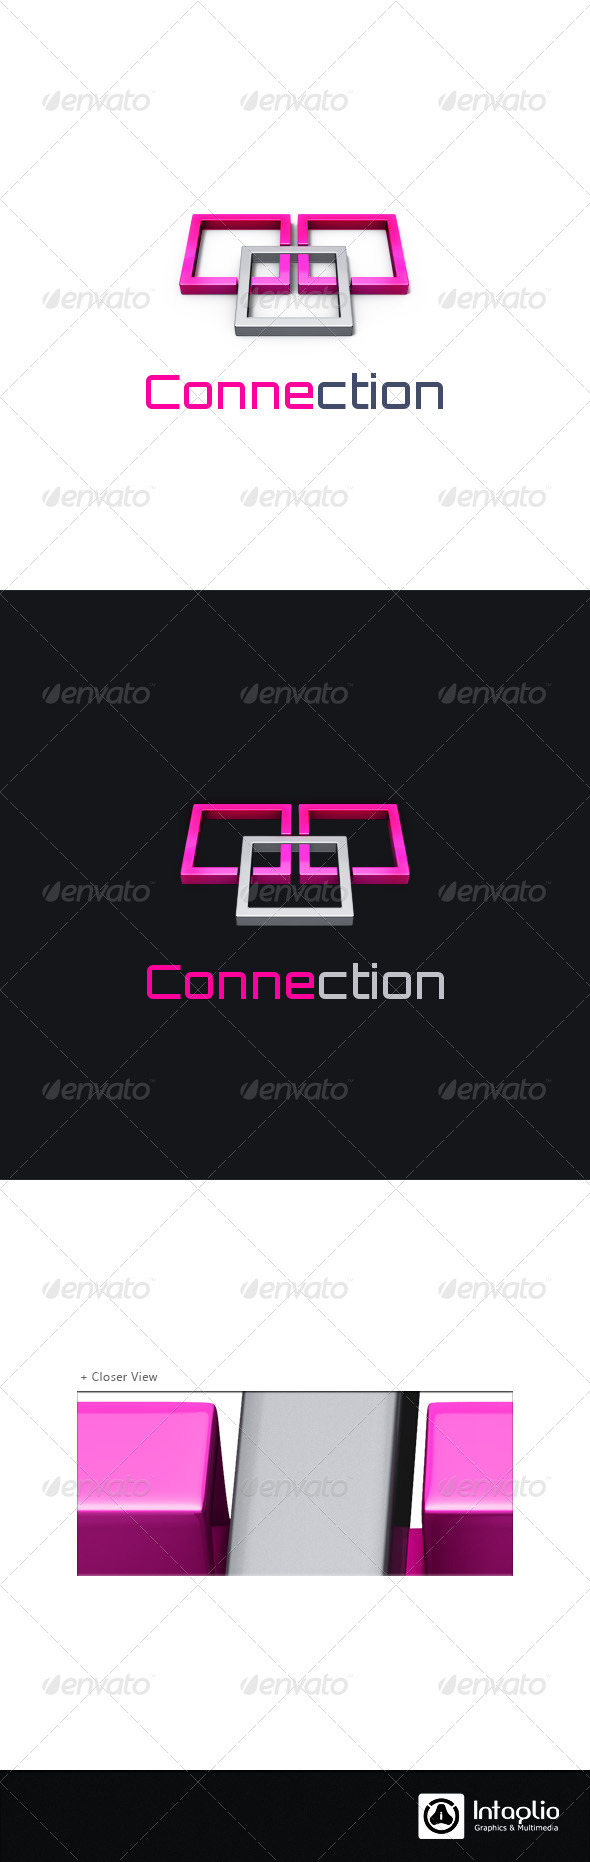 Communication Logo - Connection - 3d Abstract